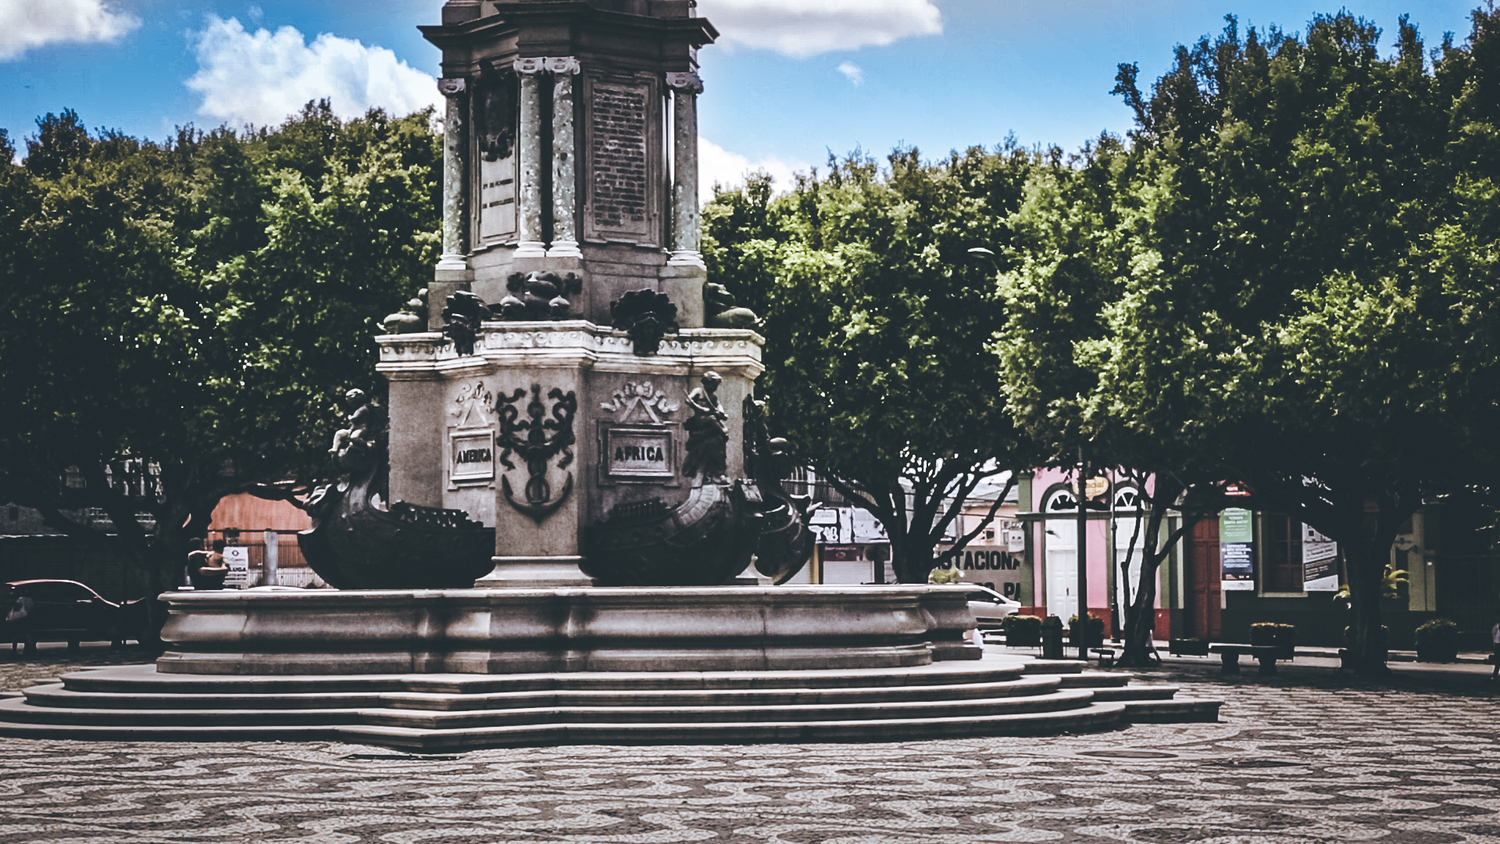 A city park with a fountain that talks about the imported goods used to build the Amazon Theatre.